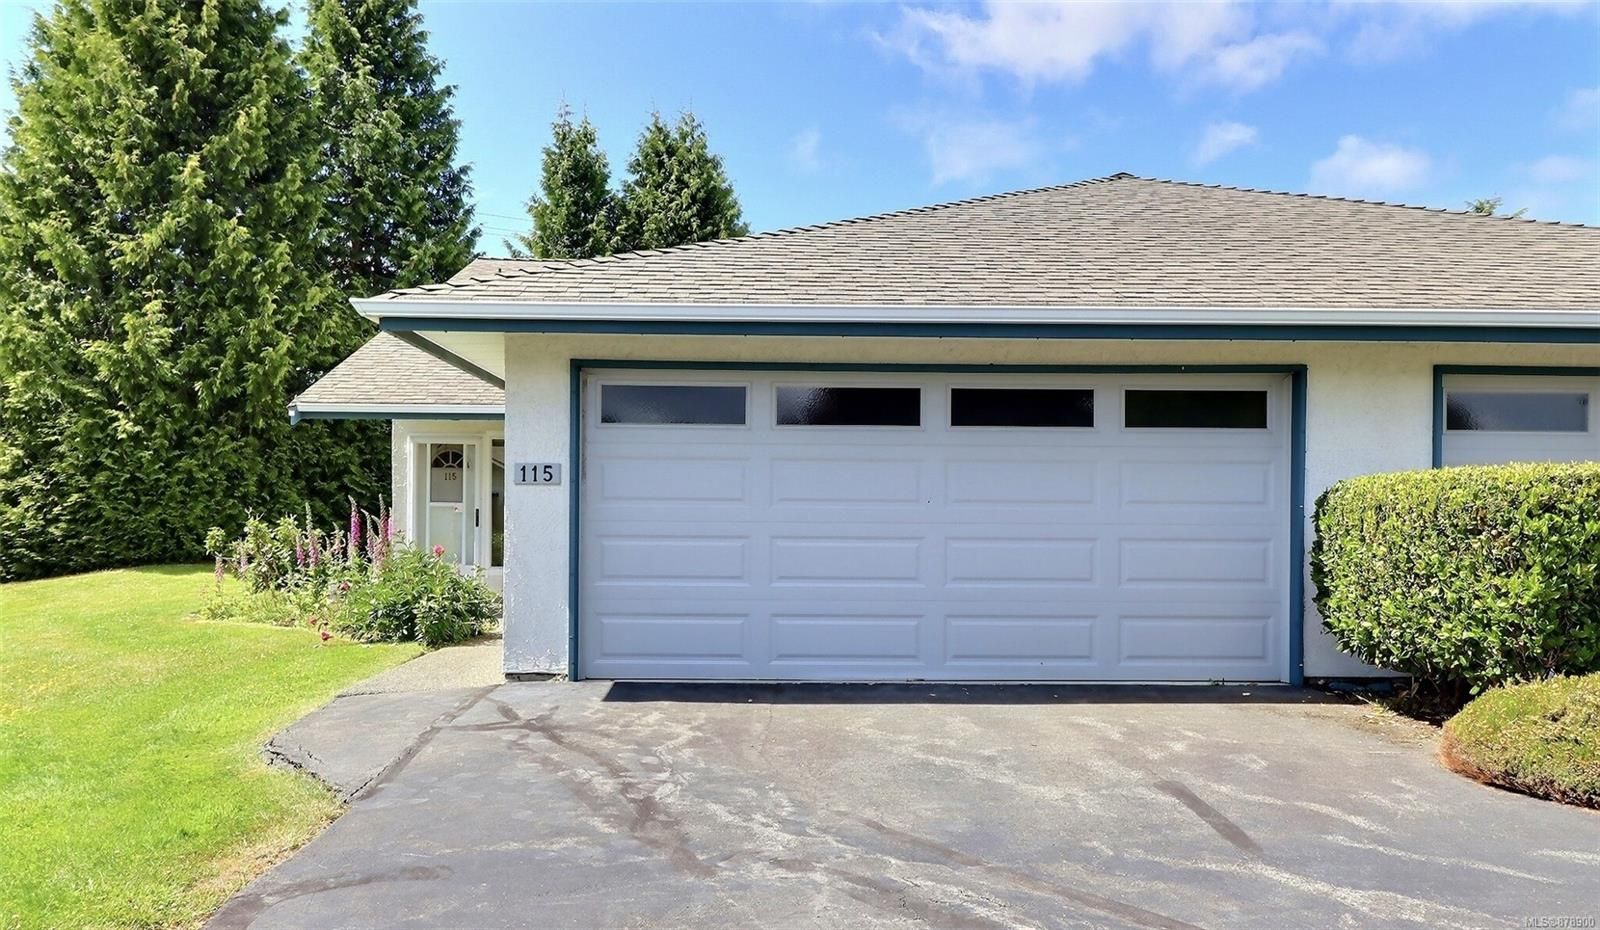 Main Photo: 115 2600 Ferguson Rd in : CS Turgoose Row/Townhouse for sale (Central Saanich)  : MLS®# 878900